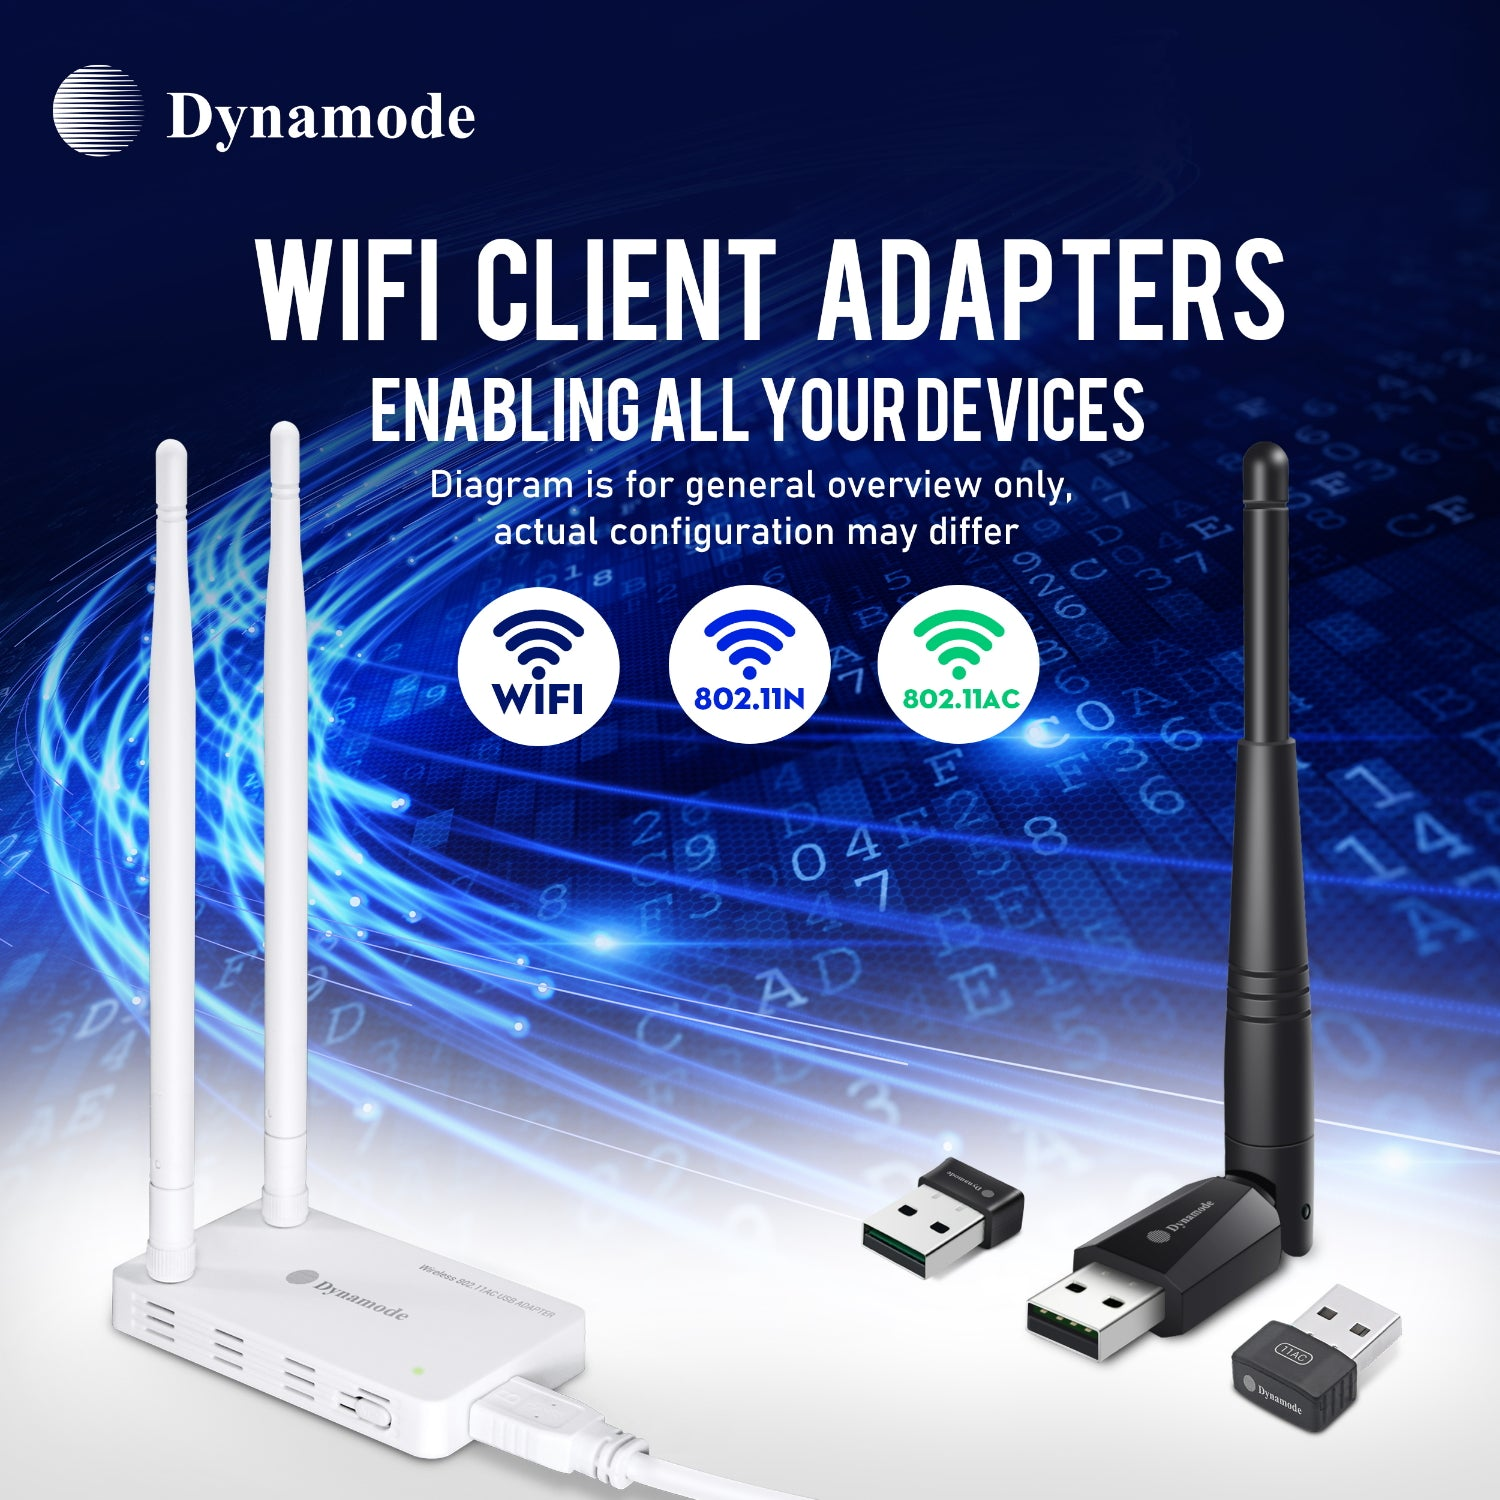 WL-700AN-AC High-Gain WiFi 433Mbps Adapter